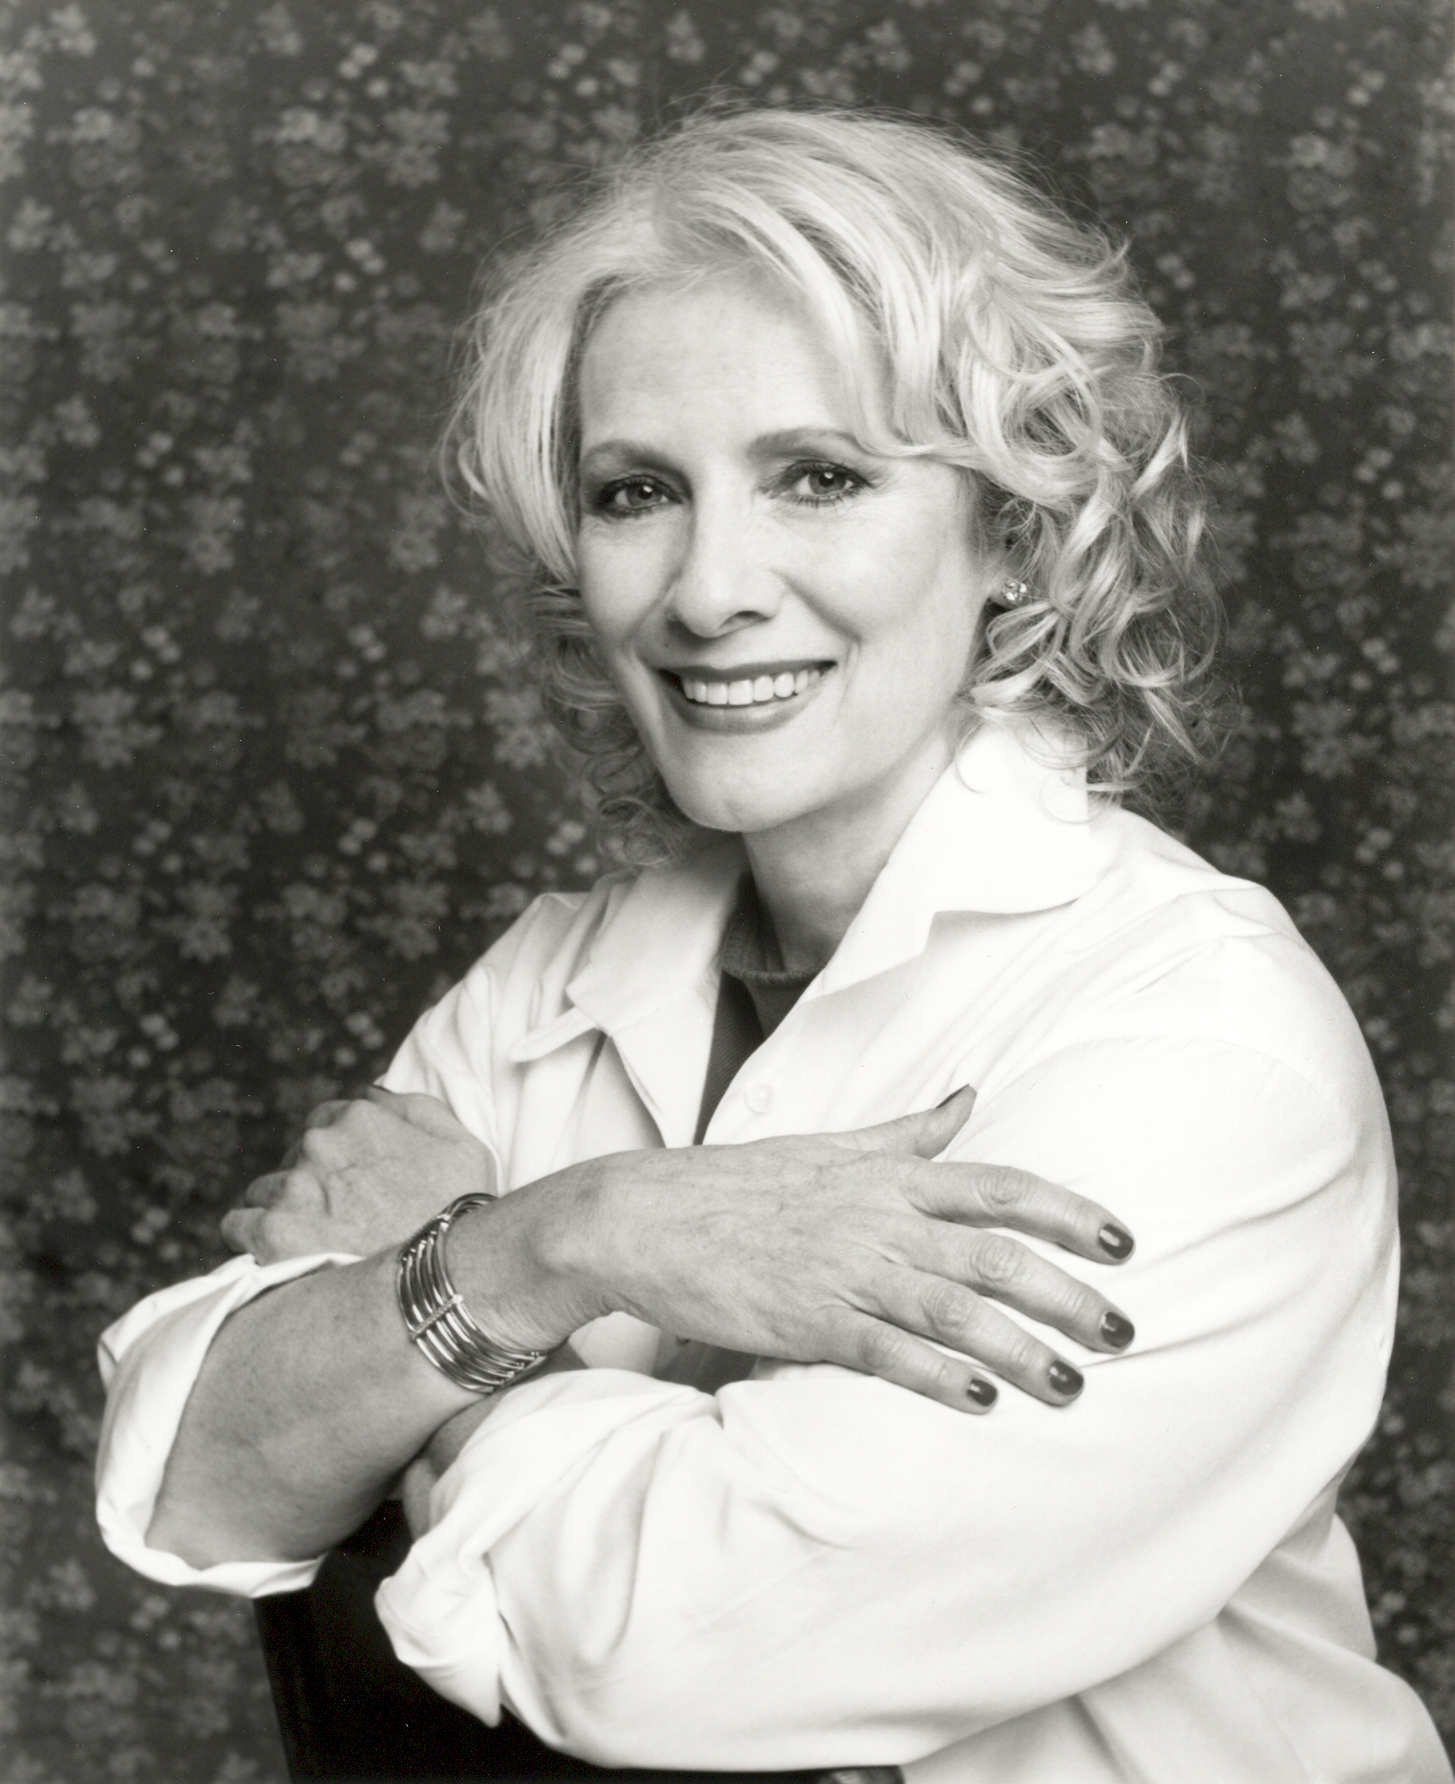 betty buckley movies and tv showsbetty buckley memory, betty buckley, betty buckley ghostlight, betty buckley carrie, betty buckley cats memory, betty buckley cats, betty buckley awards, betty buckley net worth, betty buckley over you, betty buckley imdb, betty buckley twitter, betty buckley eight is enough, betty buckley sunset boulevard, betty buckley grey gardens, betty buckley youtube, betty buckley movies and tv shows, betty buckley feet, betty buckley awards 2015, betty buckley instagram, betty buckley with one look